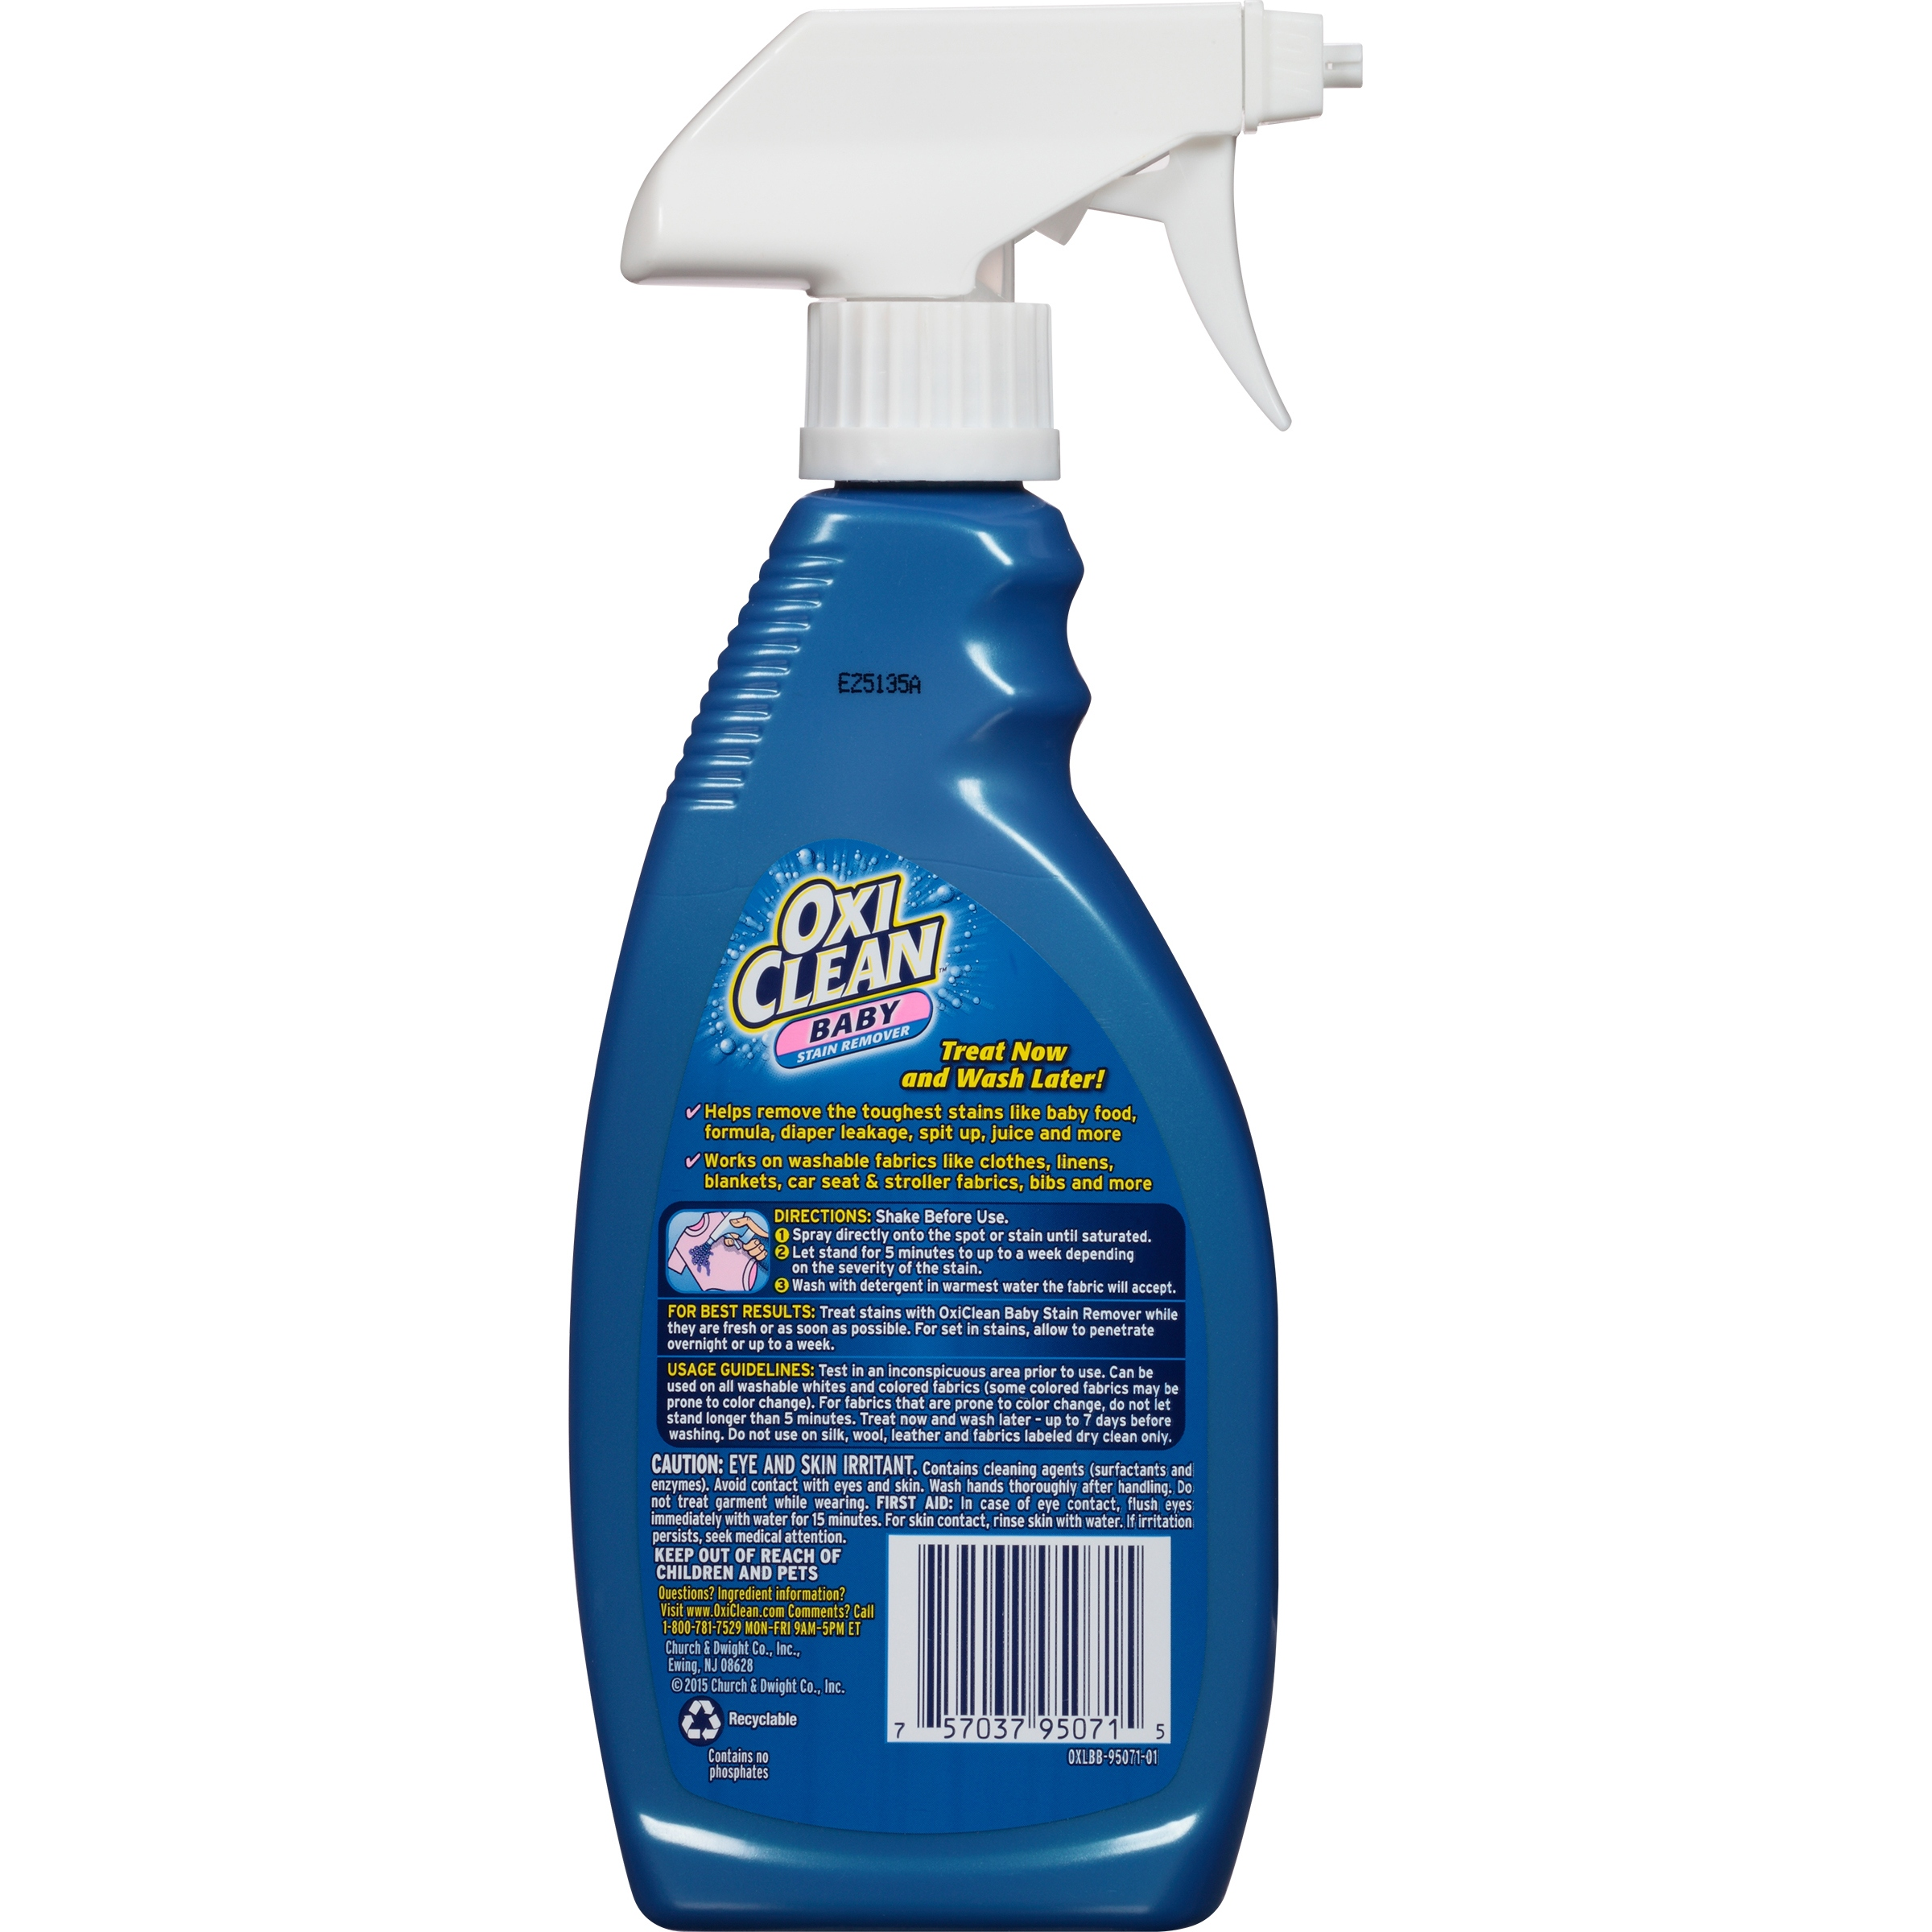 OxiClean Baby Stain Remover 16 Ounces Walmart